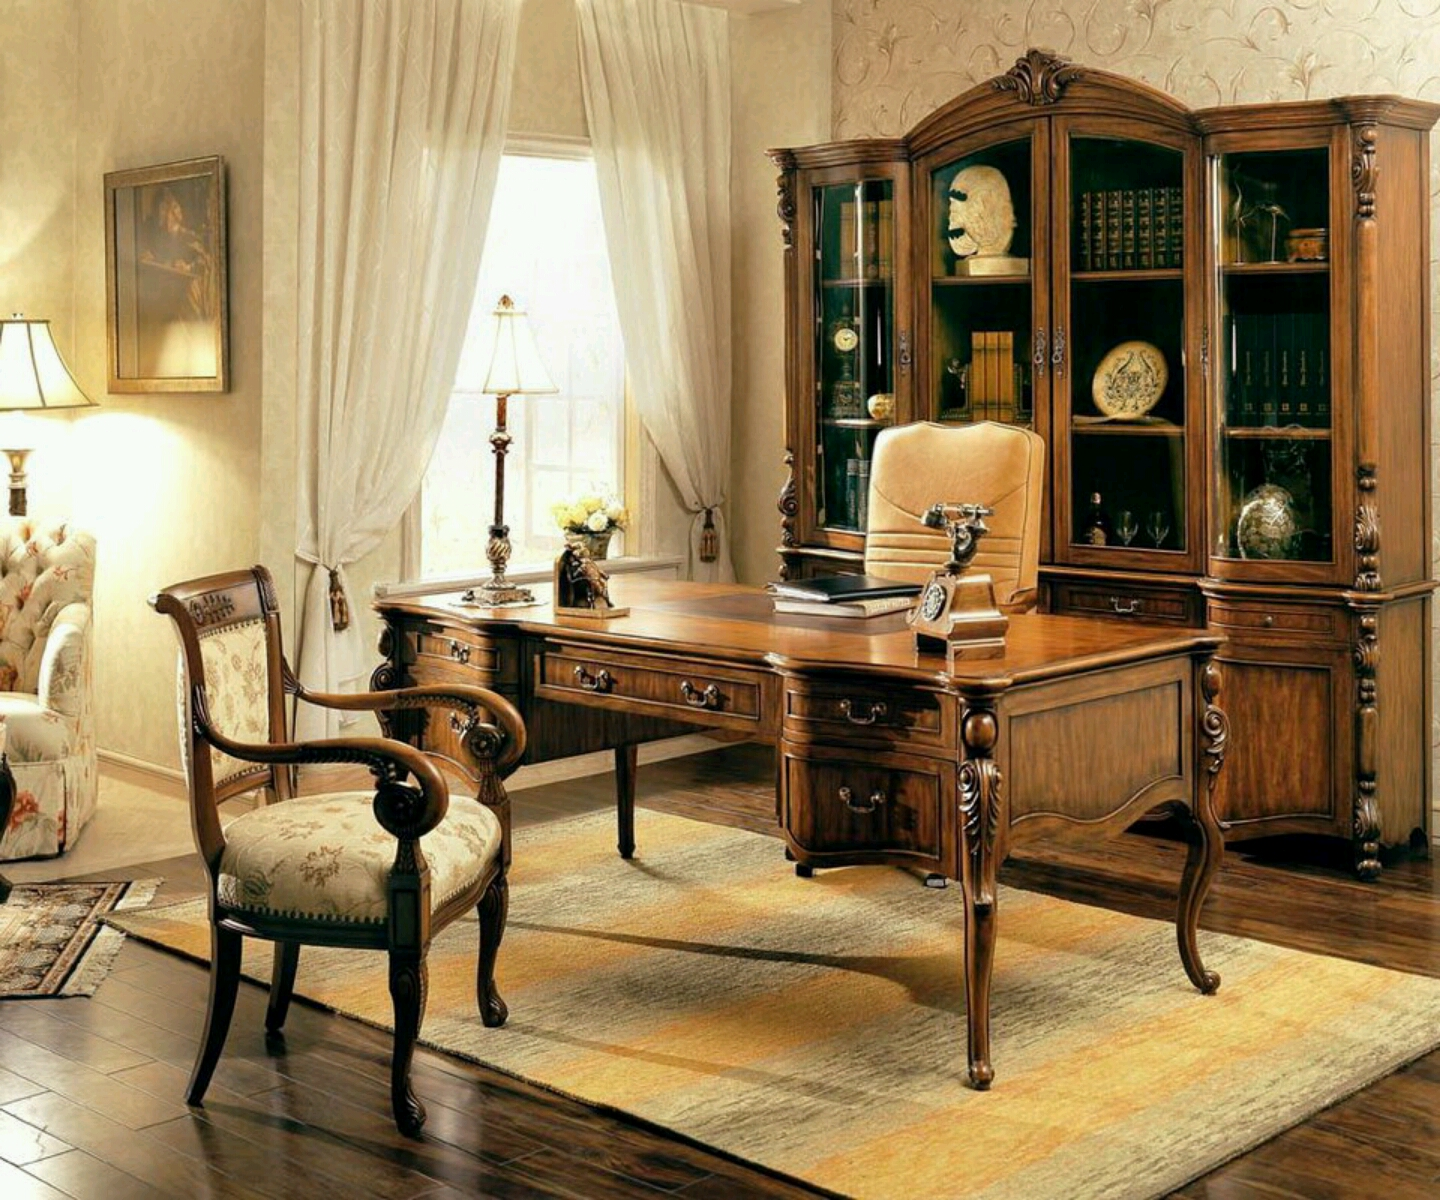 Modern Study Room Furnitures Designs Ideas Furniture Gallery